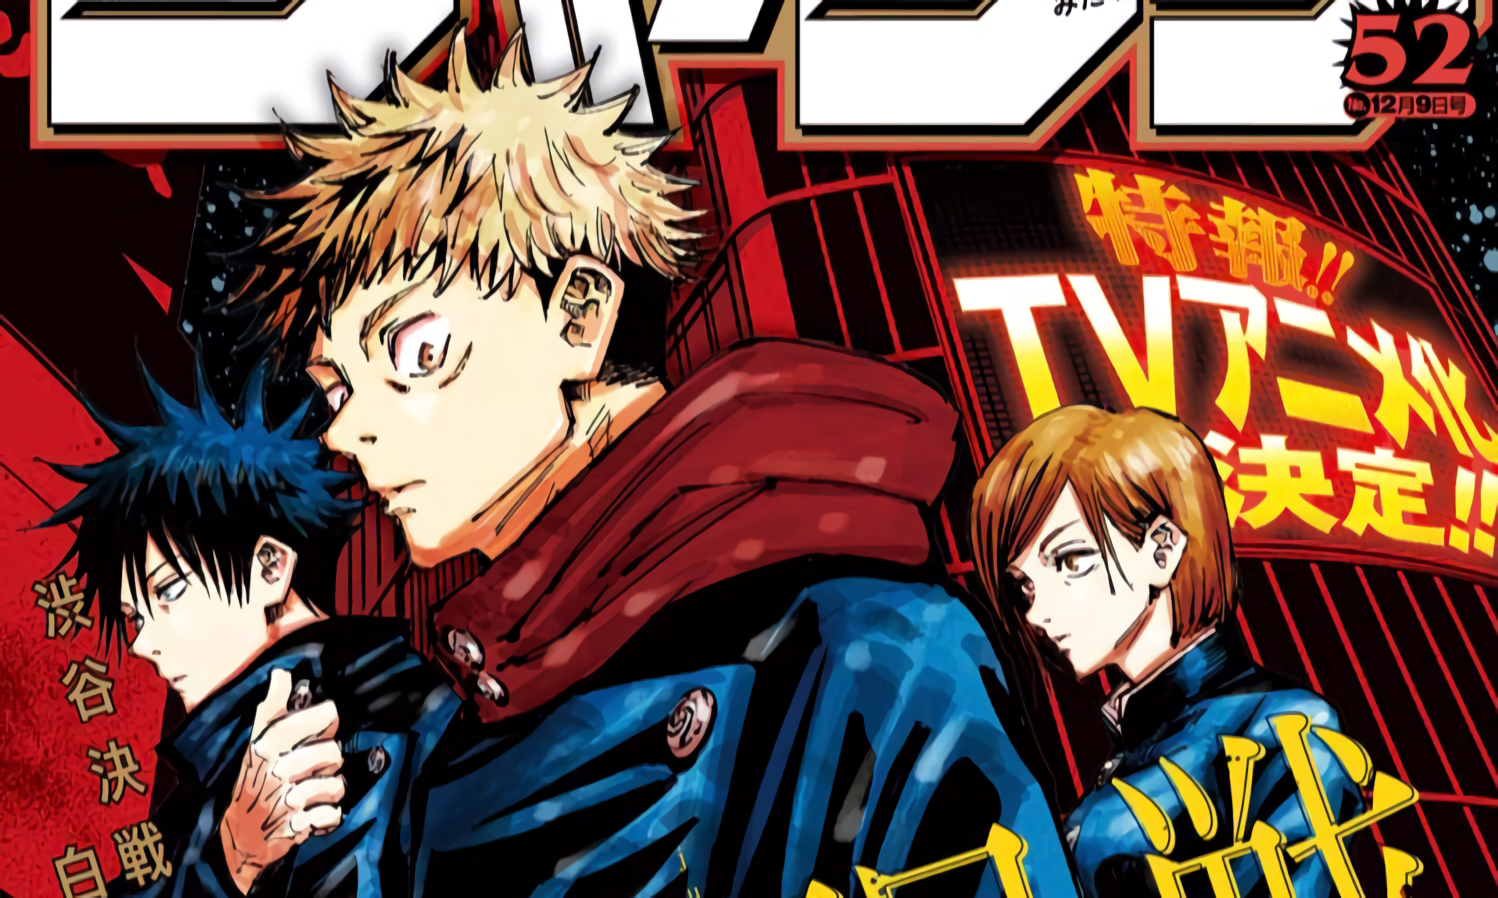 Jujutsu Kaisen Anime What It Means For Weekly Shonen Jump Otaquest